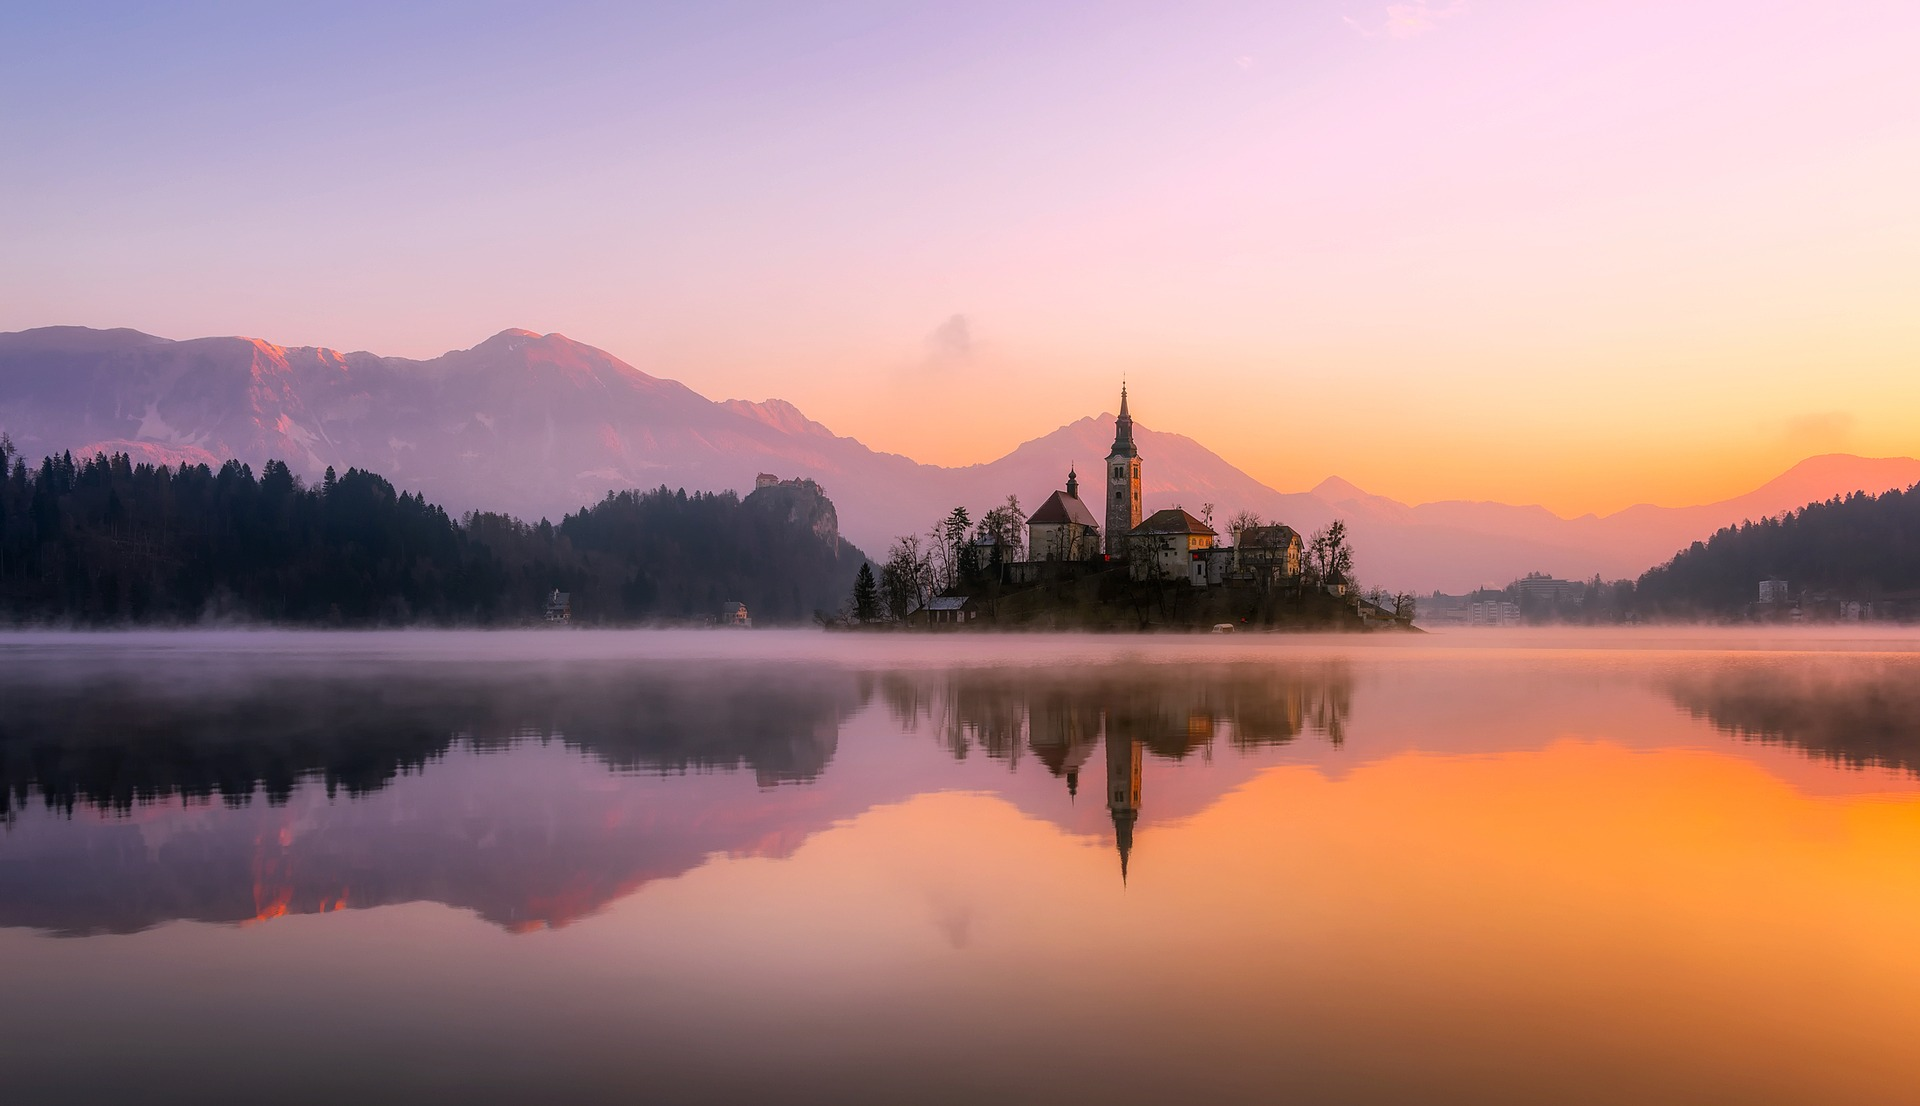 Slovenia is also home to stunning scenery including Lake Bled.